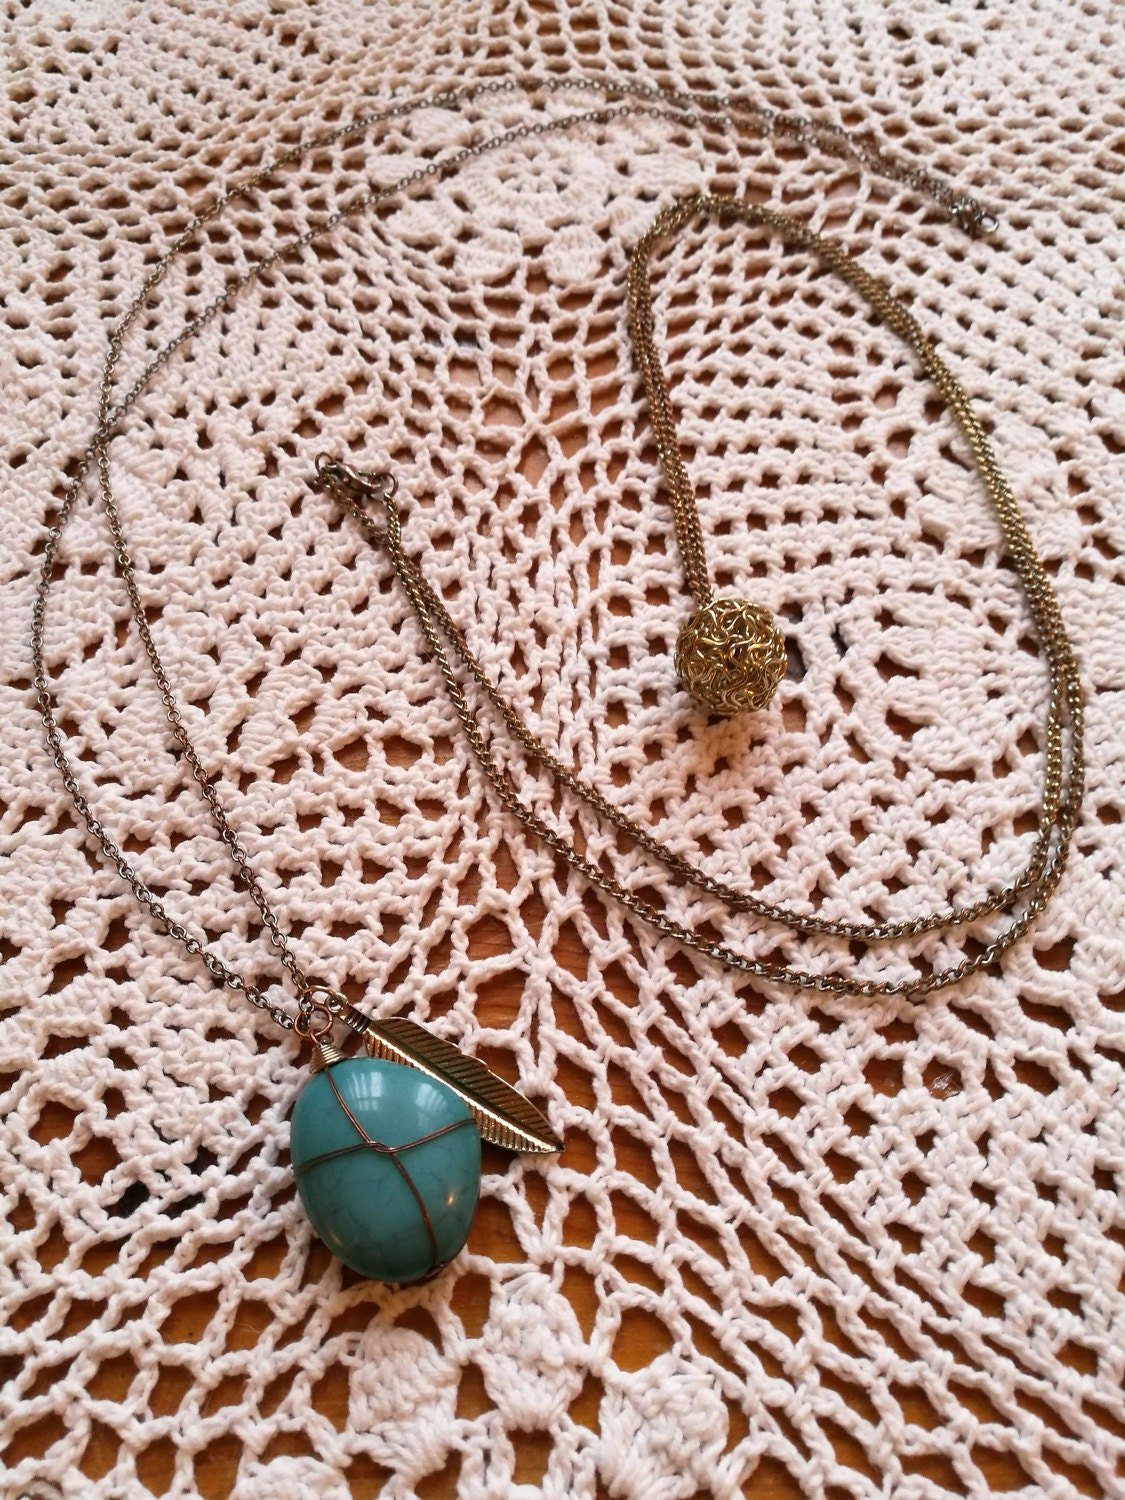 Long chain necklace wire wrapped turquoise with feather charm also a wire mesh ball necklace 1990s jewellery.